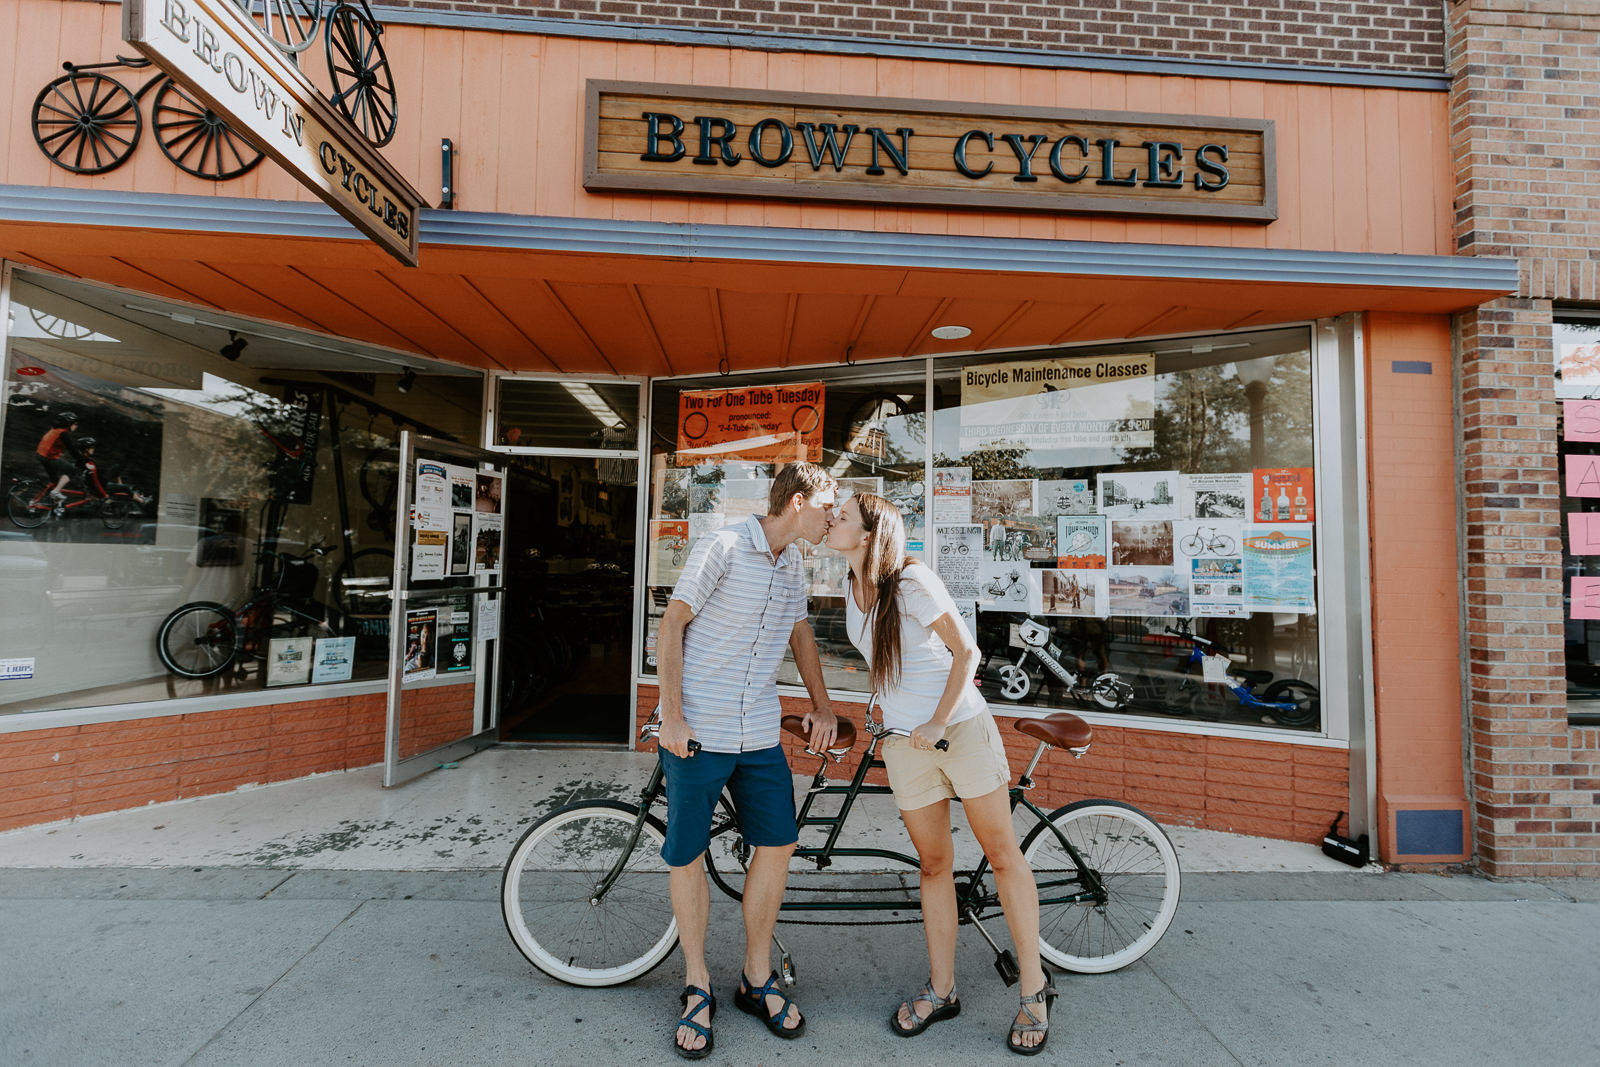 Couple leaning against bike while kissing in front of Brown Cycles